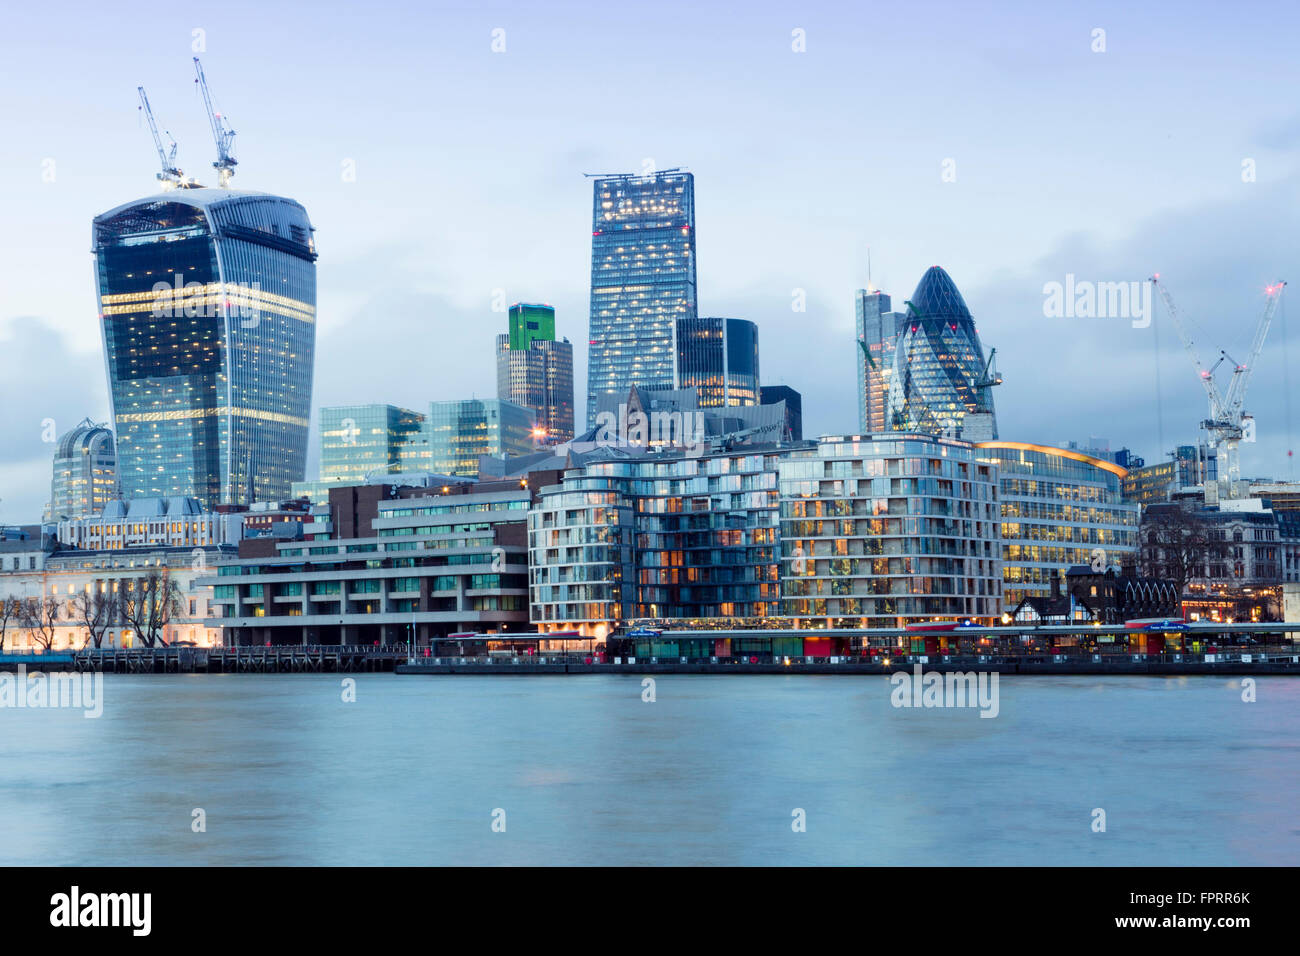 City of London skyline showing modern buildings by Richard Rogers, Norman Foster and Rafael Vinoly - Stock Image